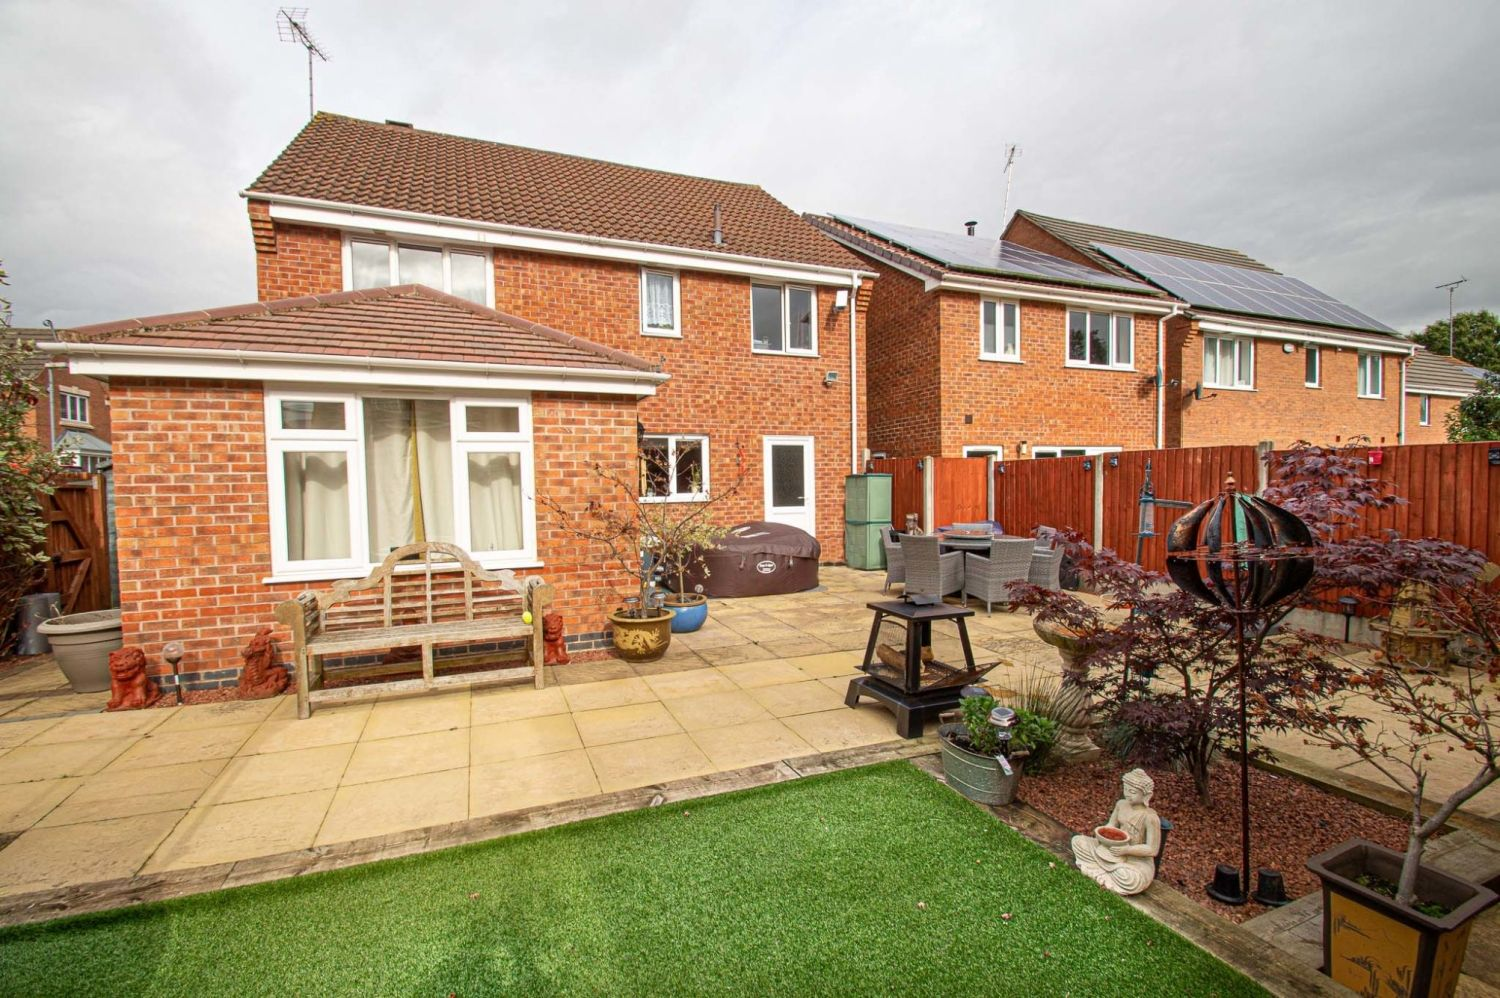 4 bed detached for sale in Harris Close, Greenlands  - Property Image 13